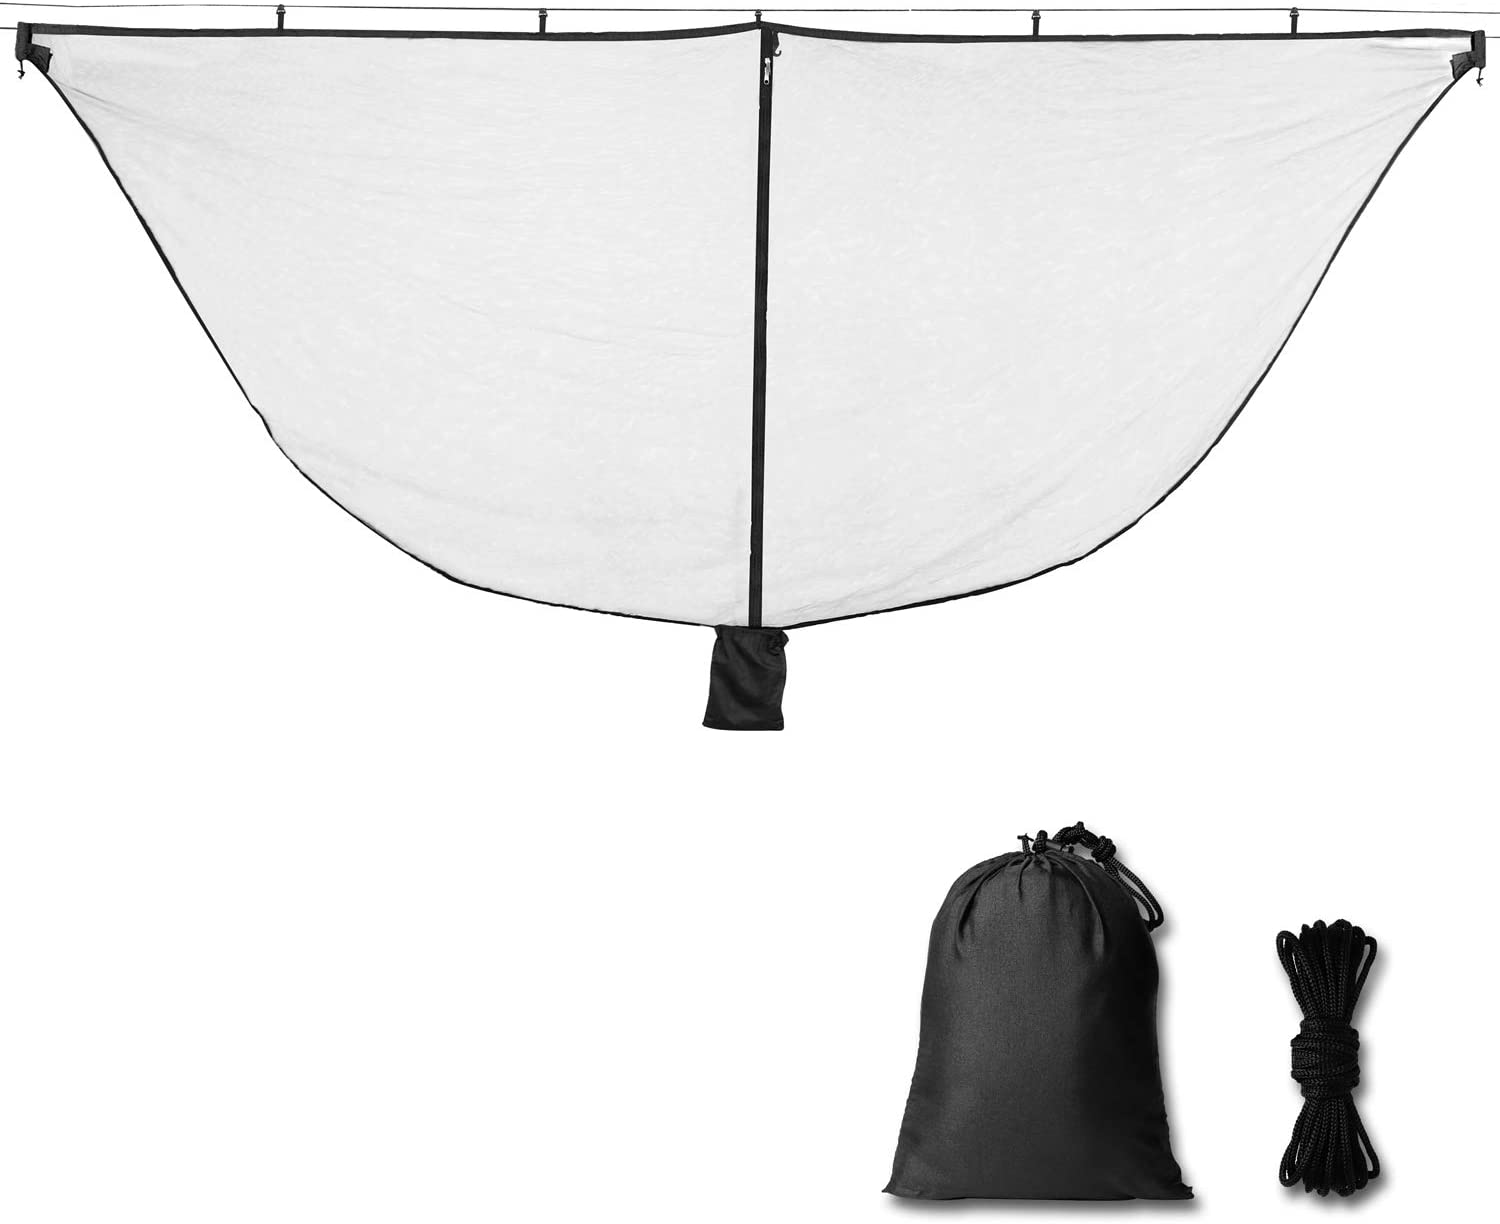 Alucky Hammock Net Camping Mosquito Net, No See Ums & Repels Insect, Polyester Netting for 360 Degree Protection, Double Sided Zipper for Easy Access Fits for All Camping Hammocks(Black: Sports & Outdoors